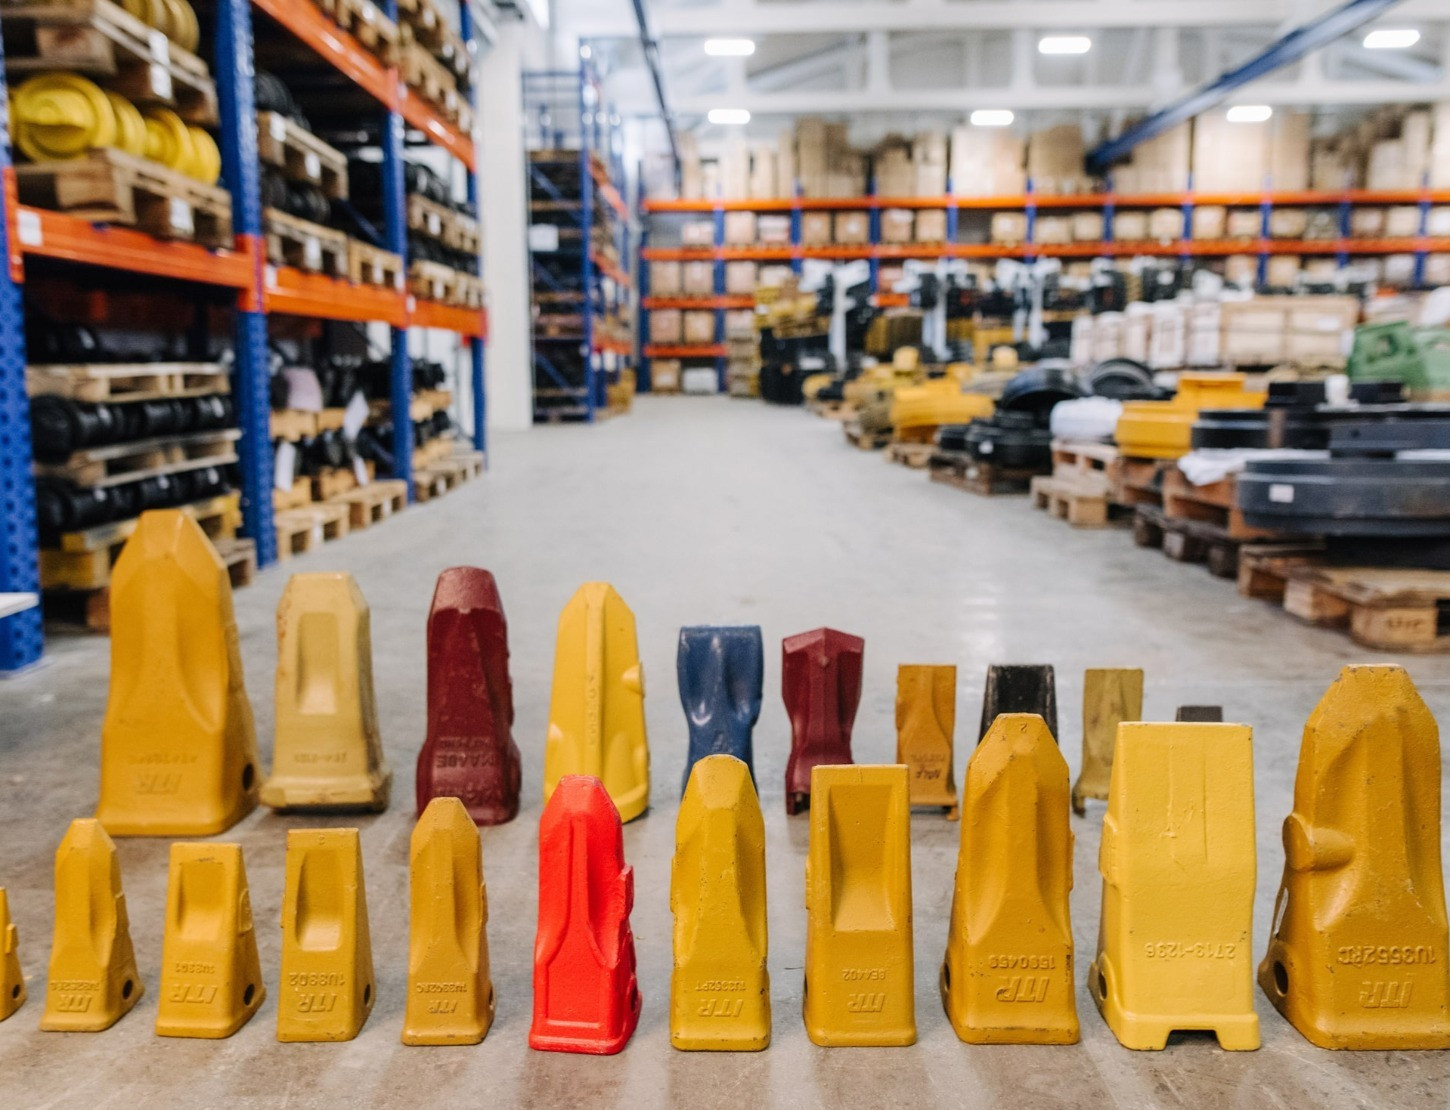 A wide range of the parts for a wide range of construction and heavy machinery